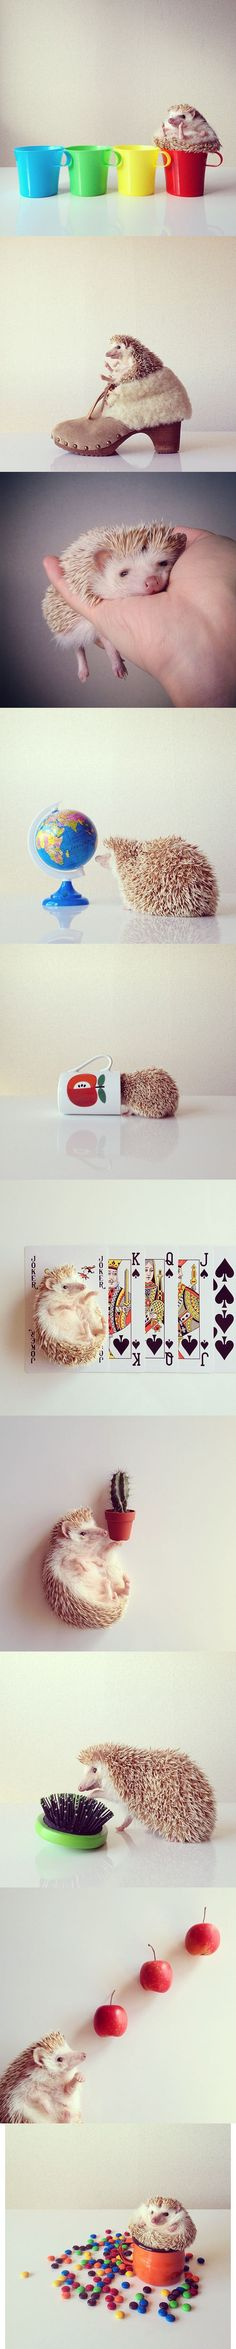 Adorable Photos Of Darcy The Hedgehog...